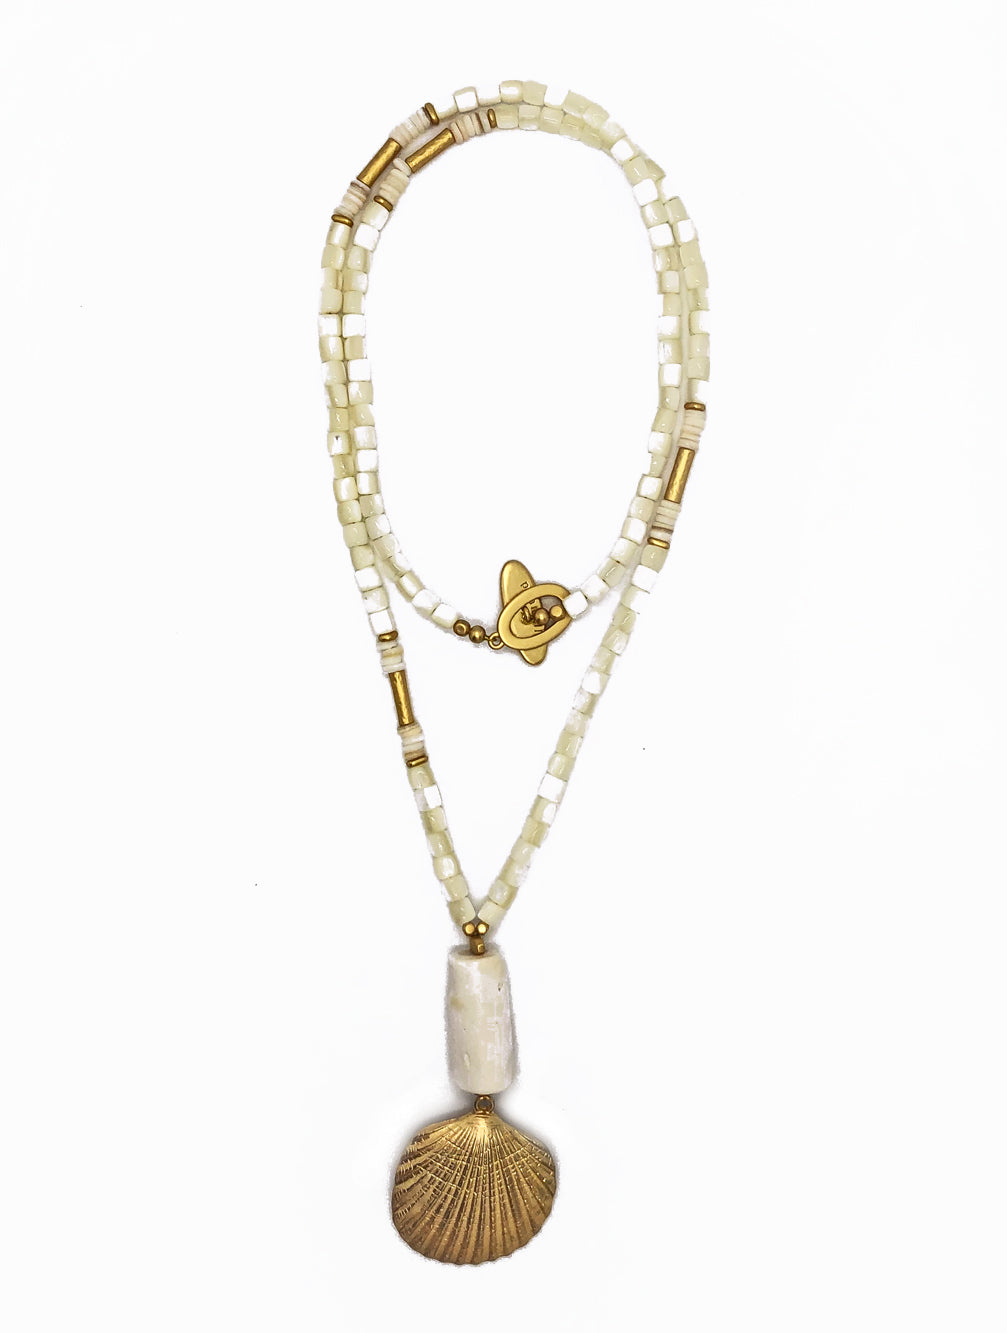 TAHITI CREAM SHELL NECKLACE - Kaia London